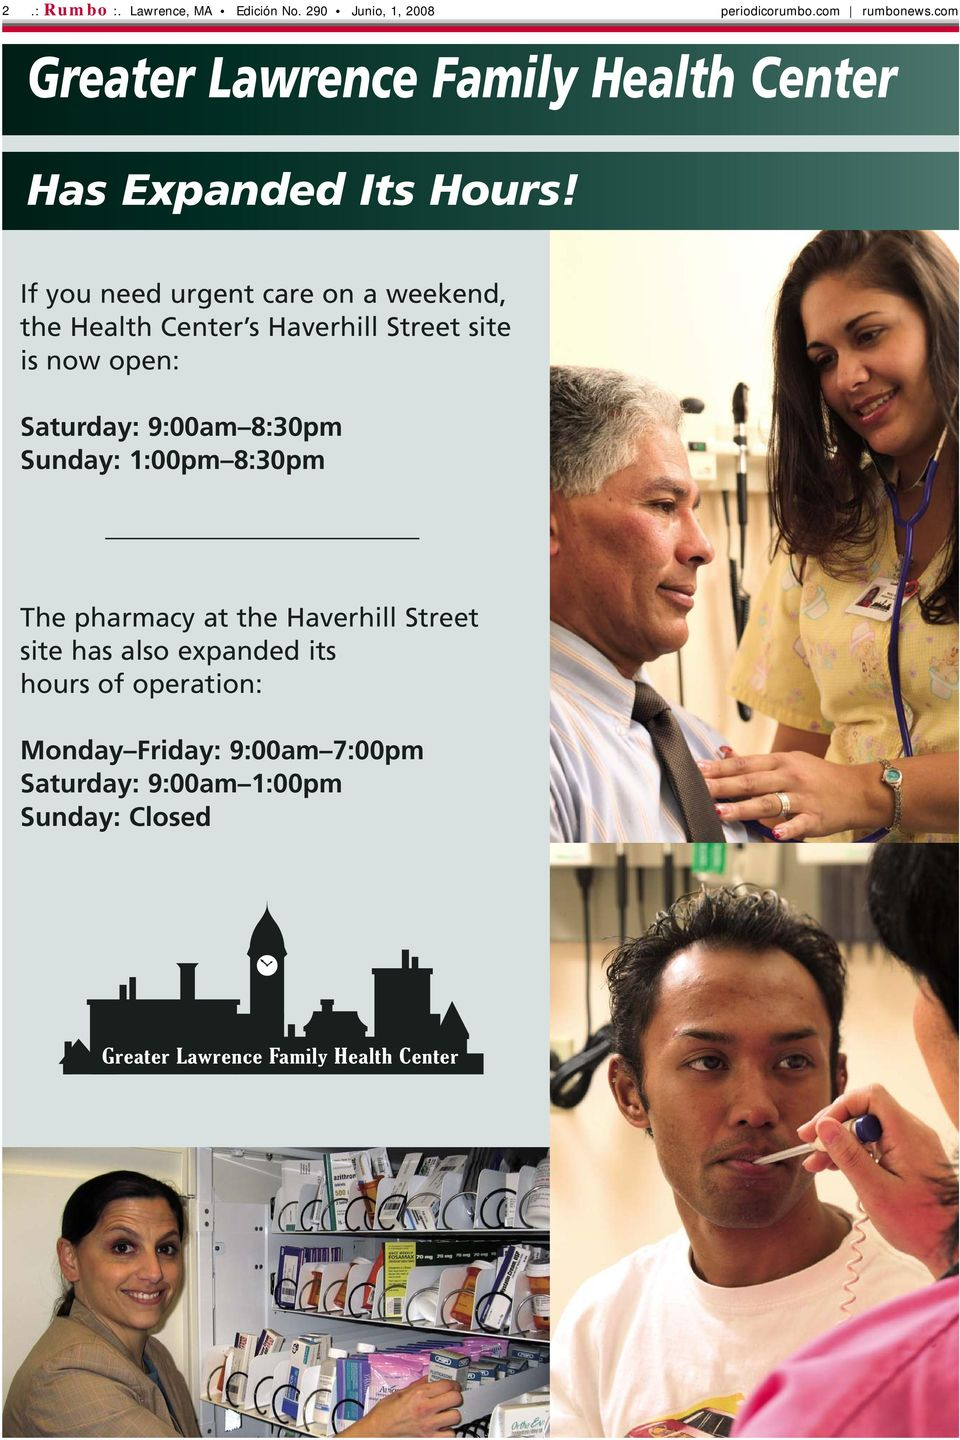 If you need urgent care on a weekend, the Health Center s Haverhill Street site is now open: Saturday: 9:00am 8:30pm